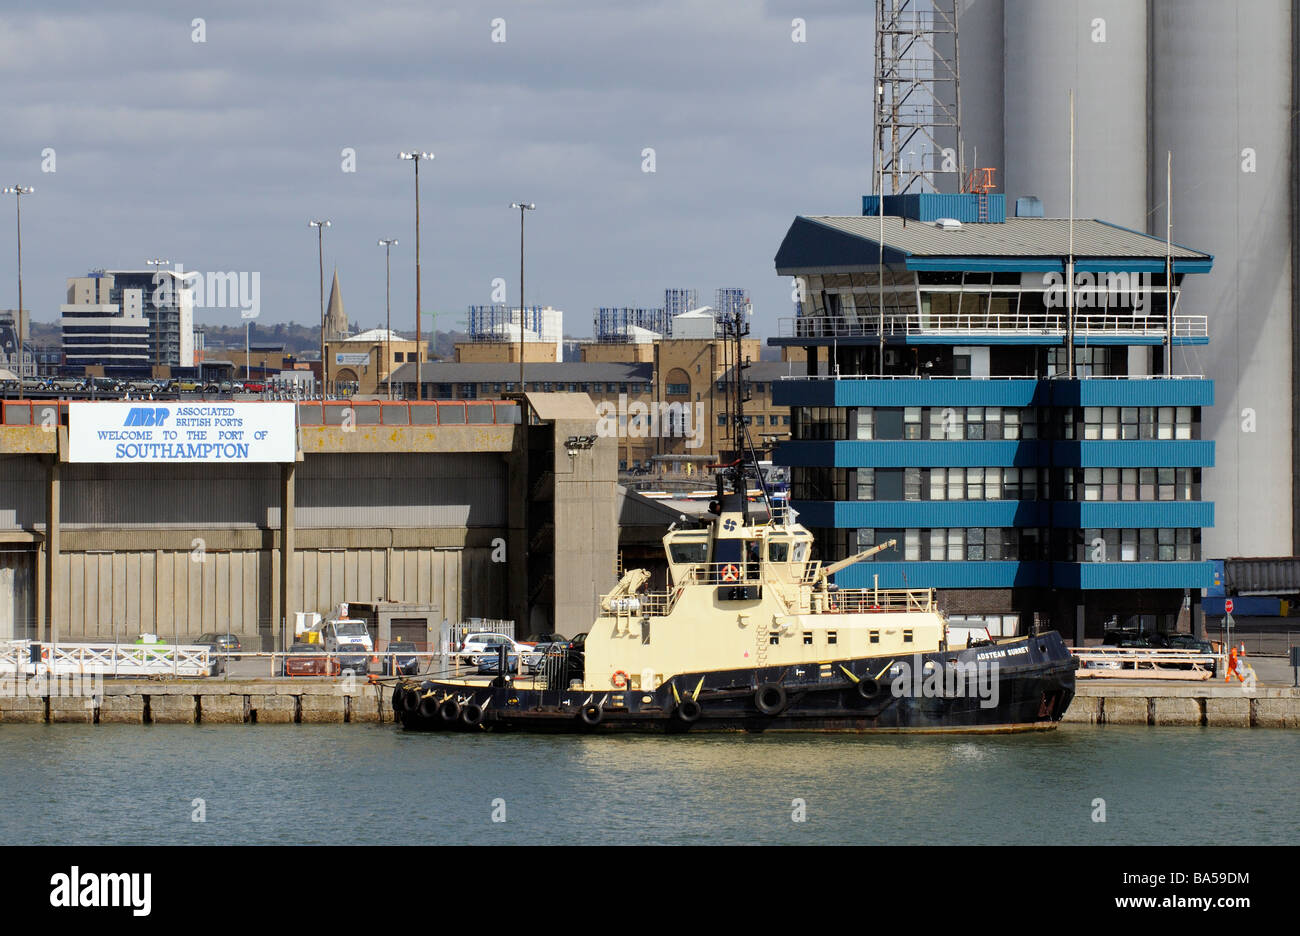 Port of Southampton southern England UK ABP waterfront building Associated British Ports - Stock Image